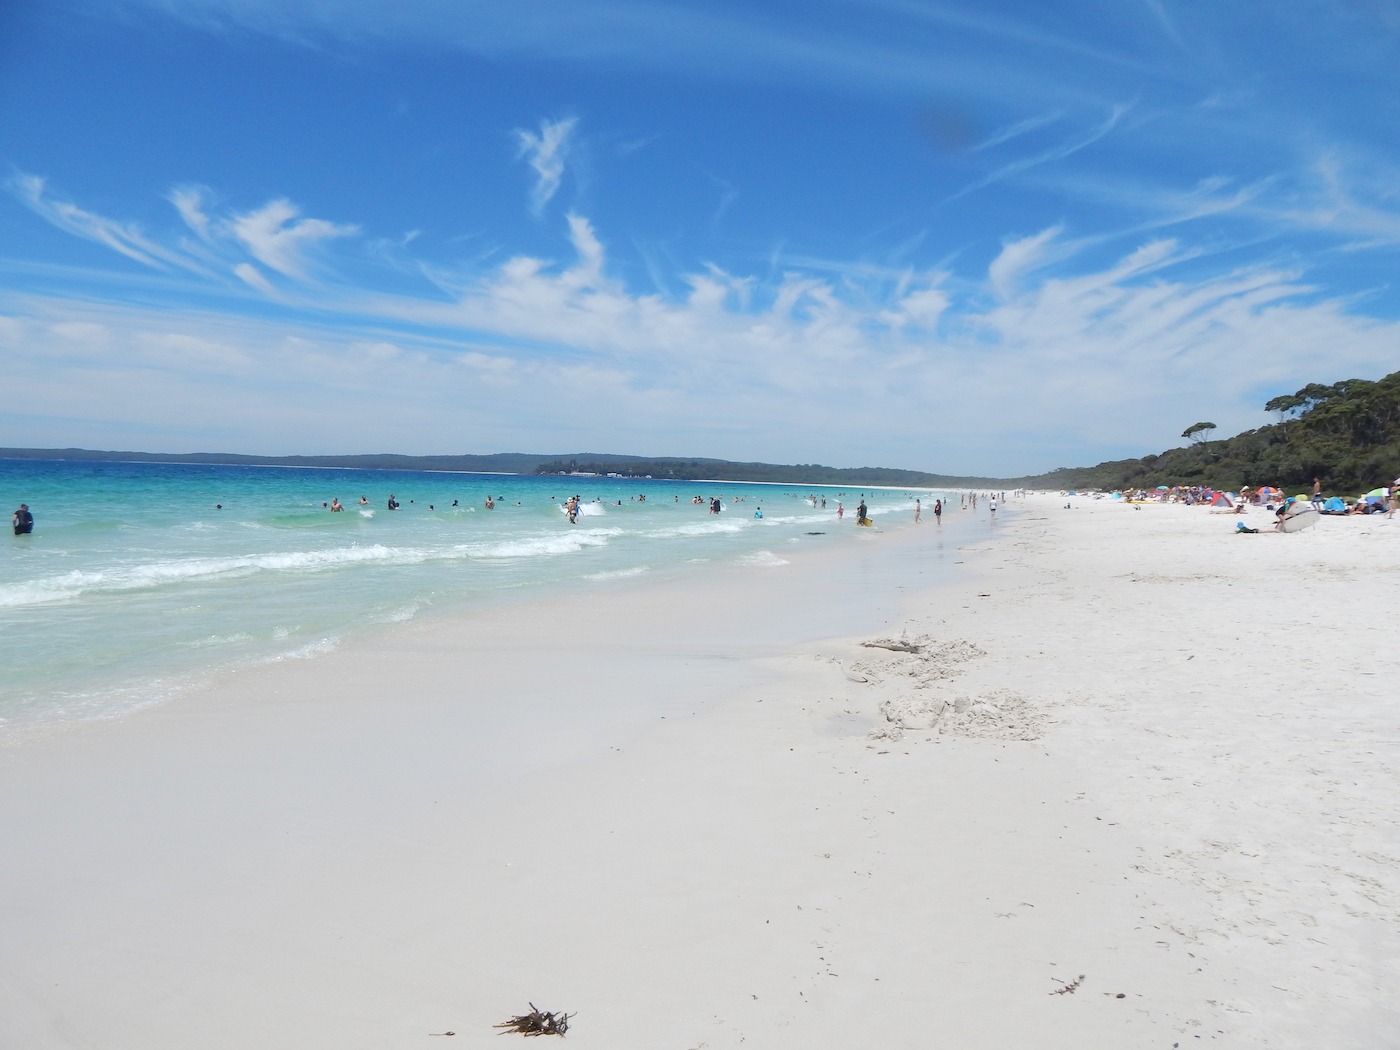 hyams beach whitest beach australia